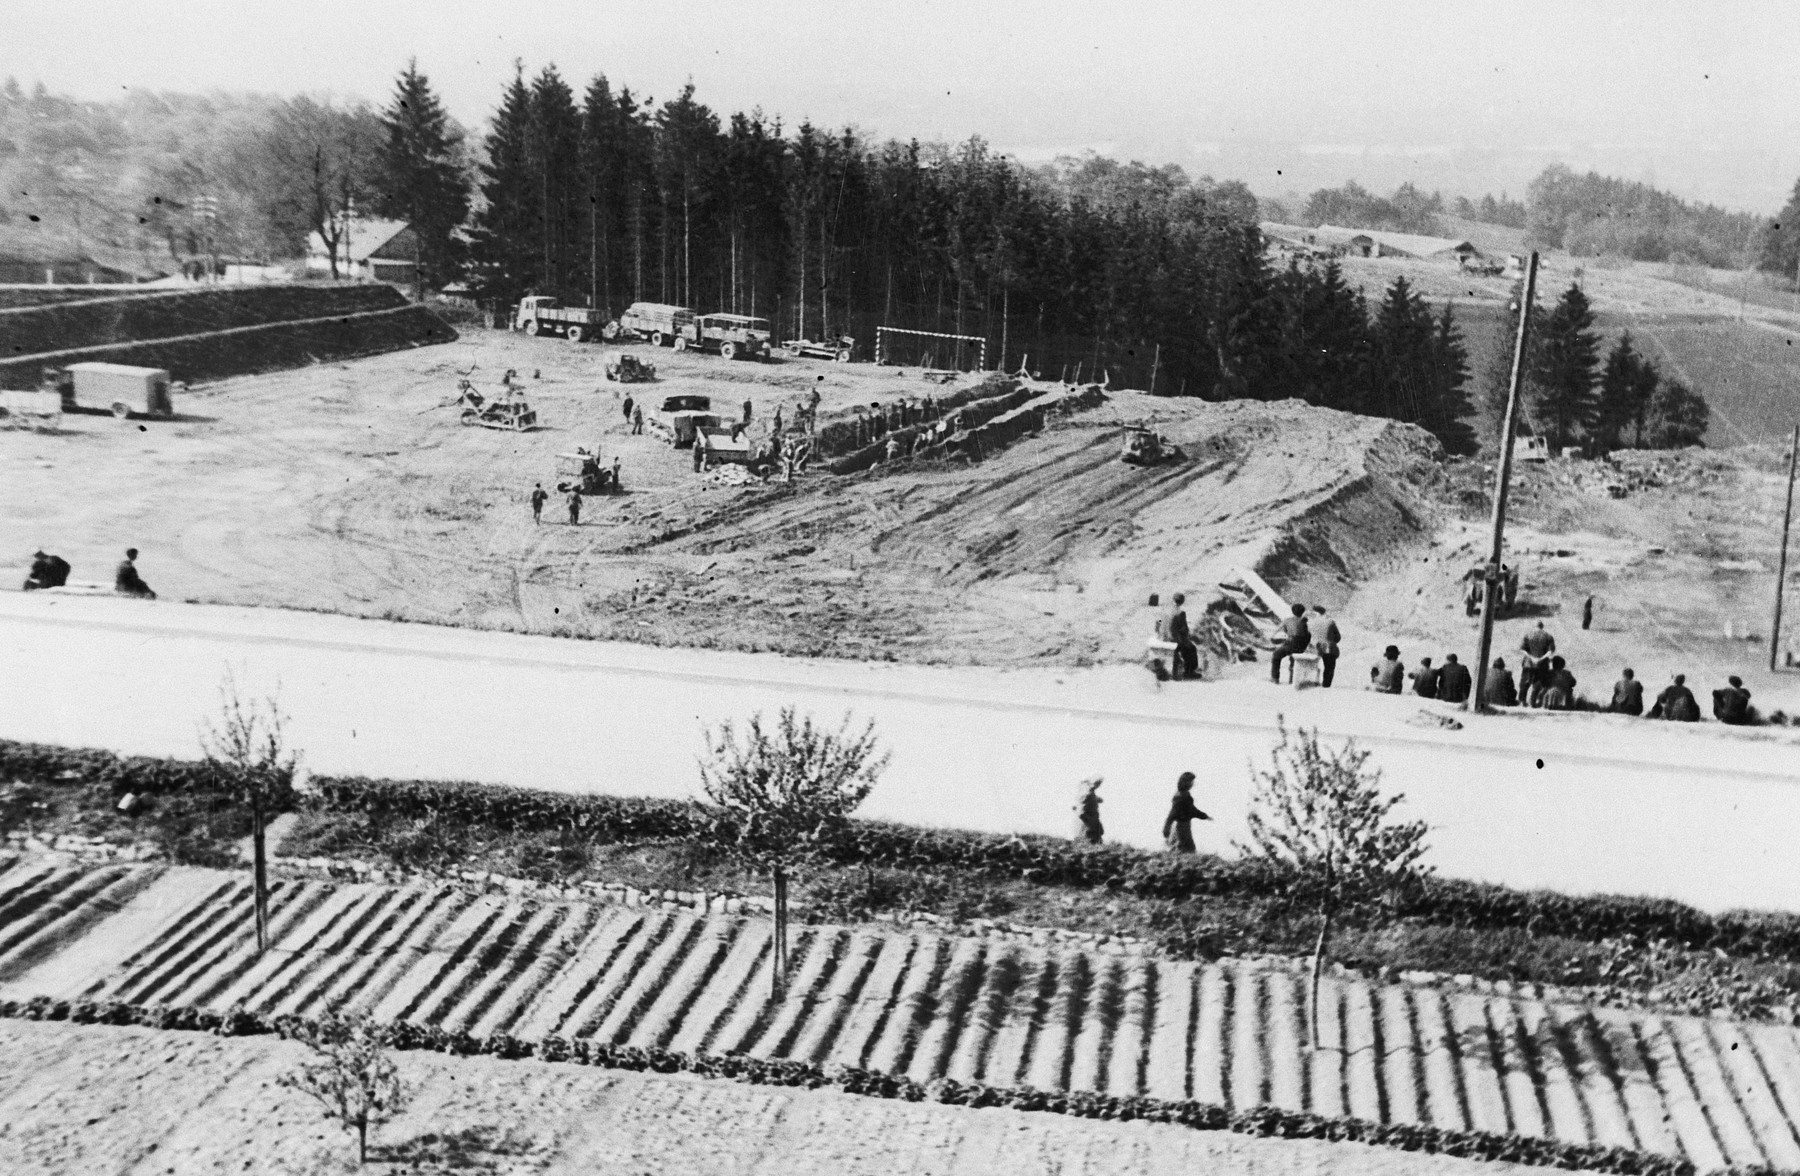 View of the Mauthausen concetration camp after liberation.